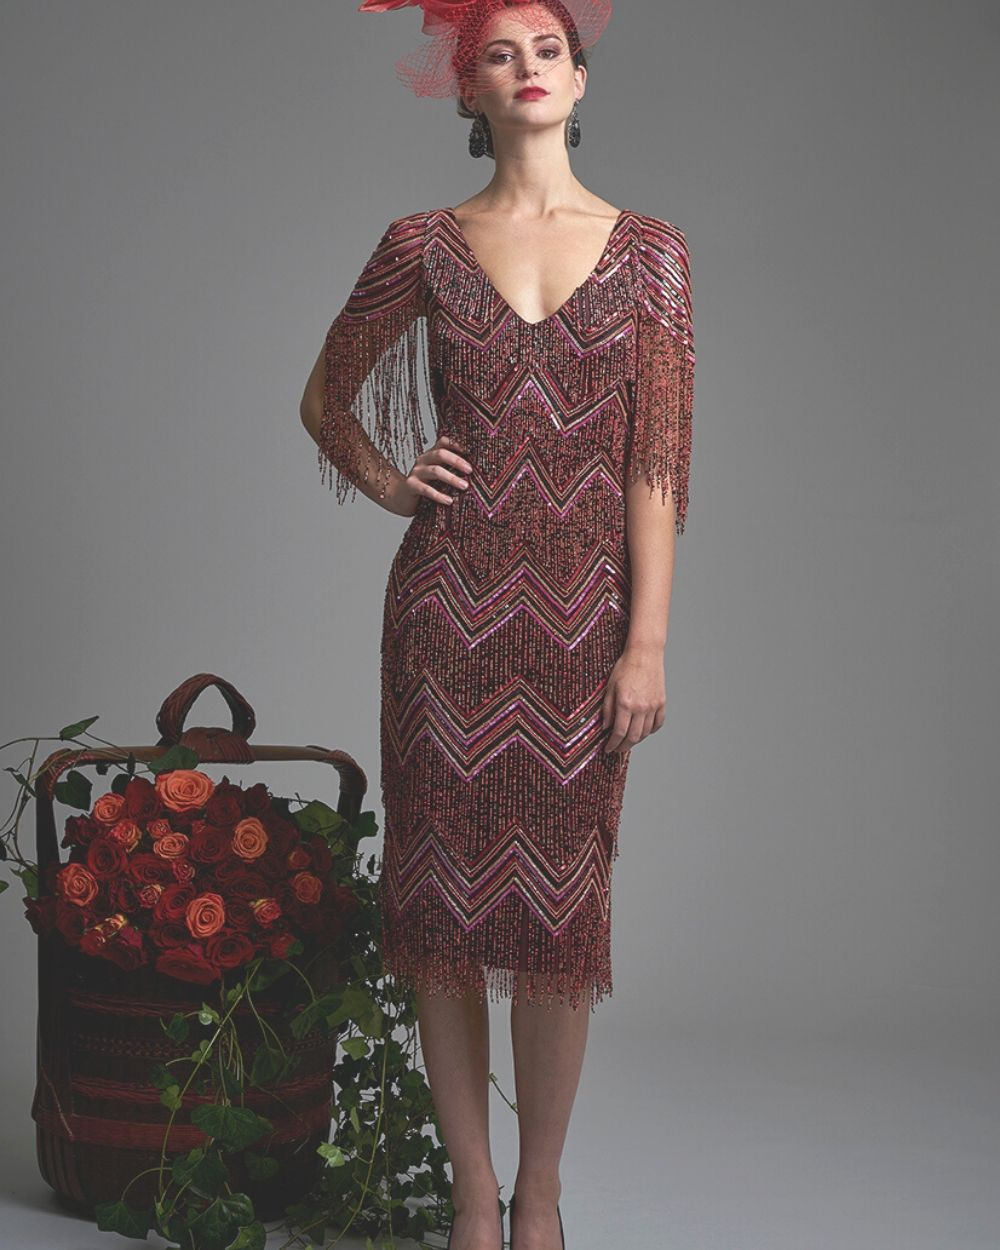 Gill Harvey Pink Dress 5034 - Snooty Frox